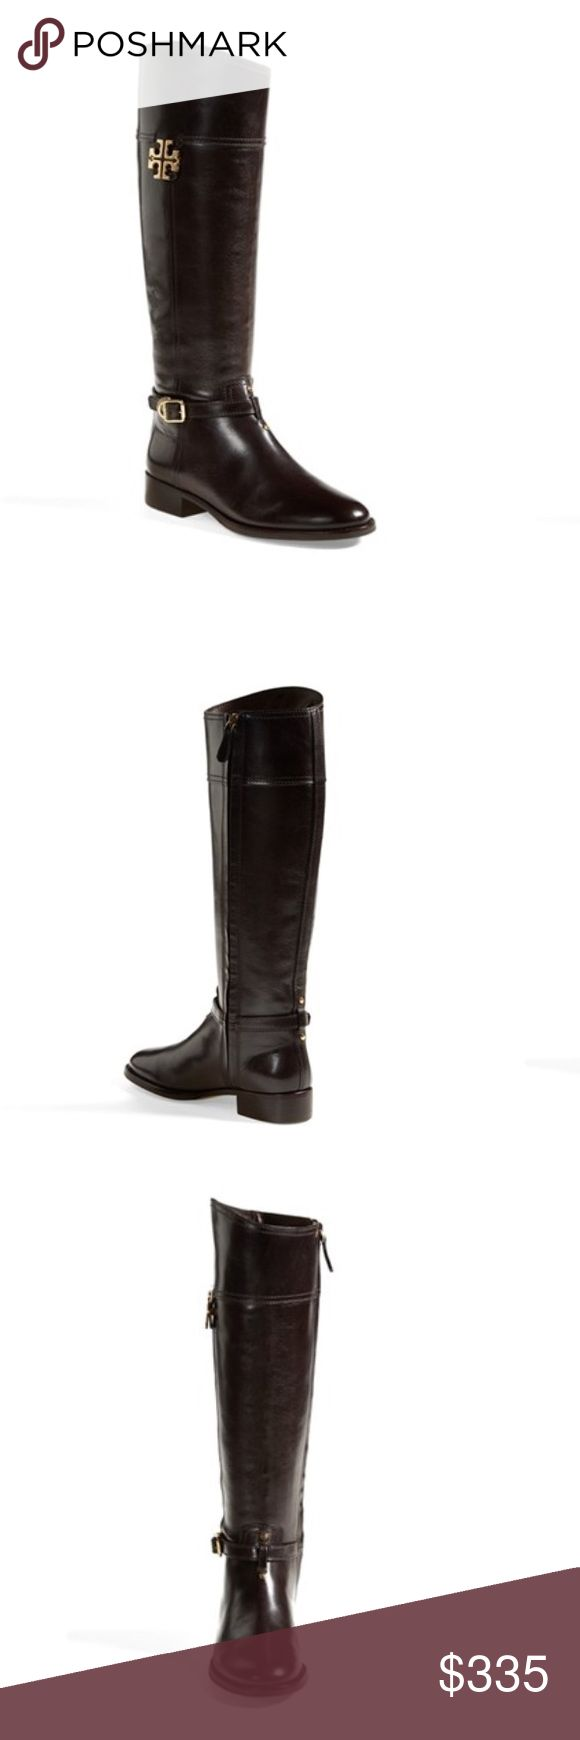 "Tory Burch Eloise Black Boot - 8.5 NIB With a slightly asymmetrical, Spanish shaft, Tory Burch's Eloise boot is the epitome of classic riding style. Lush, semigloss leather and gleaming logo hardware set off the silhouette with signature appeal.   1 1/4"" heel (size 8.5). 17"" boot shaft; 14 1/2"" calf circumference. Side zip closure. Leather upper/leather and textile lining/leather and rubber sole. By Tory Burch; made in Brazil. Salon Shoes. *more photos to come* Tory Burch Shoes"